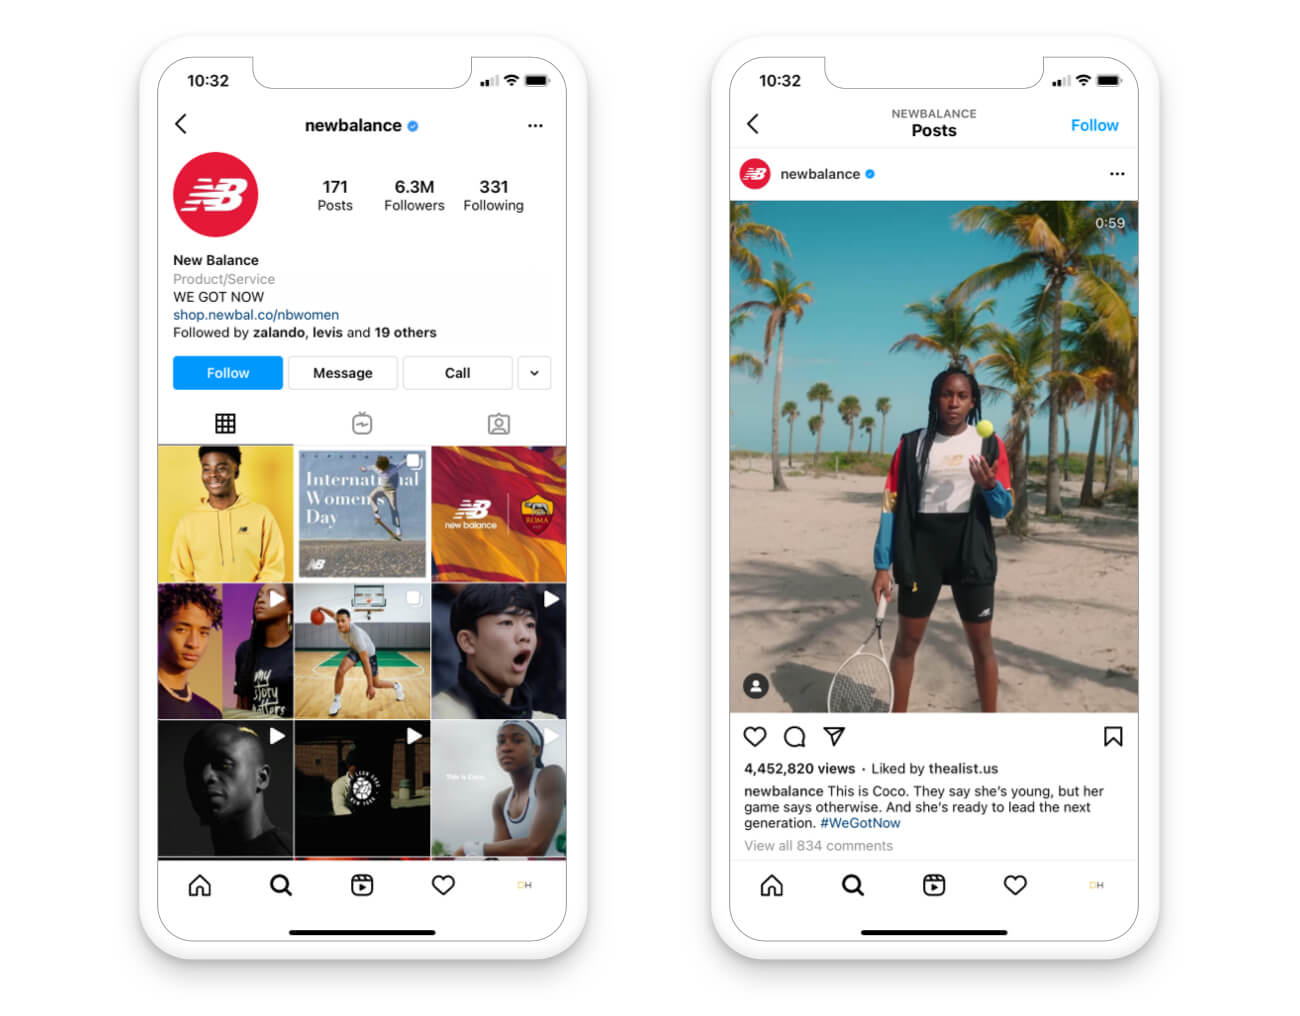 Video engagement social media New Balance's Instagram page on mobile